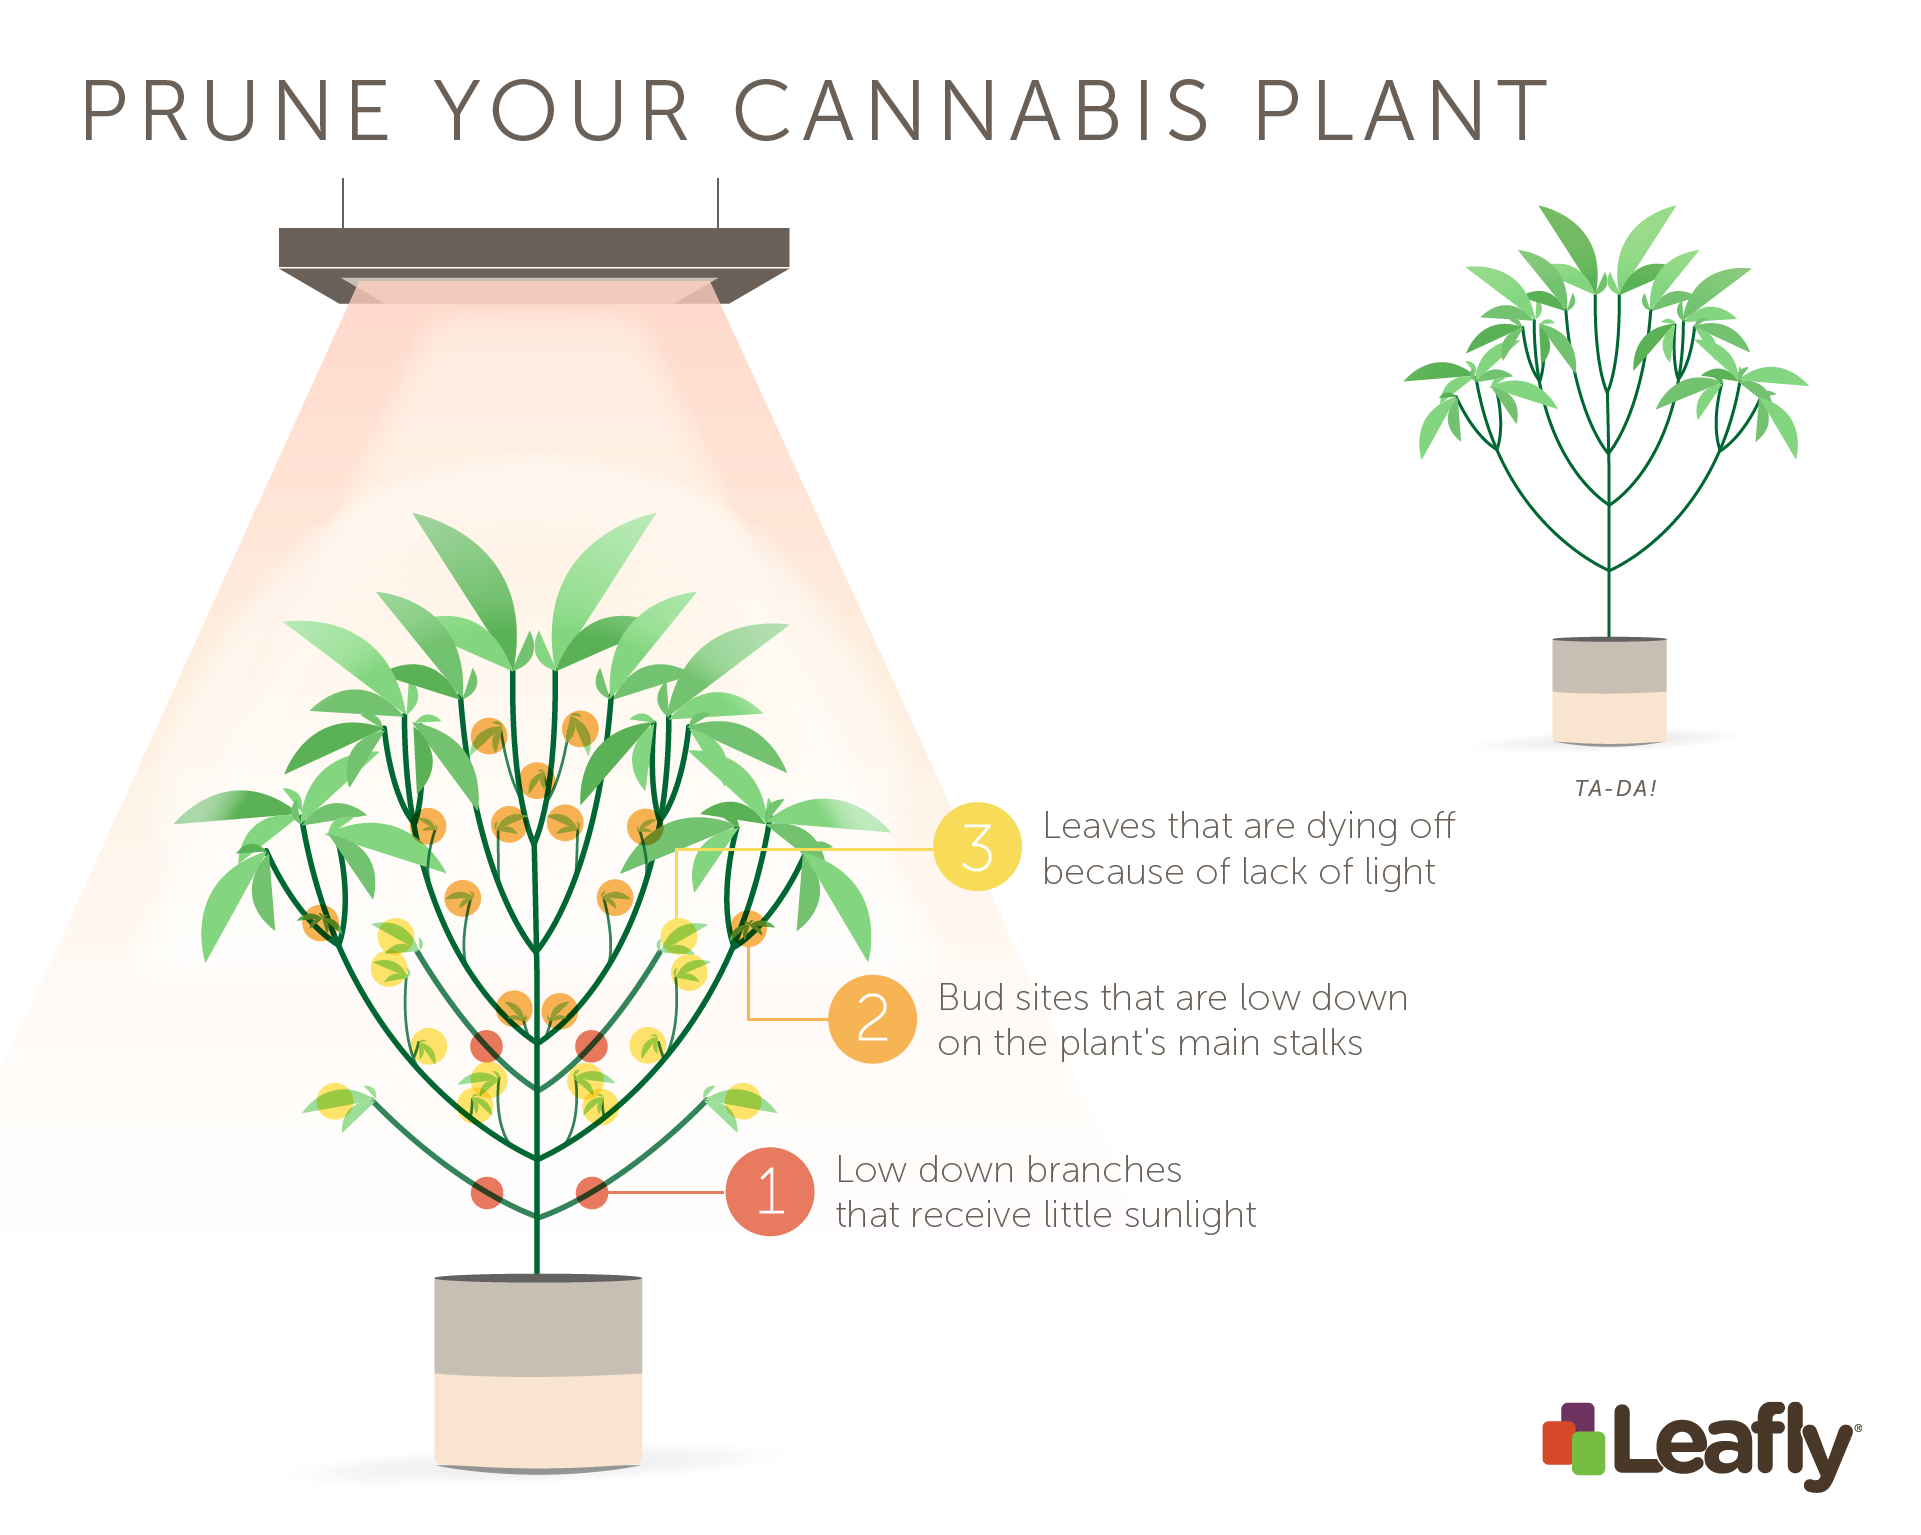 How to prune cannabis plants in flower